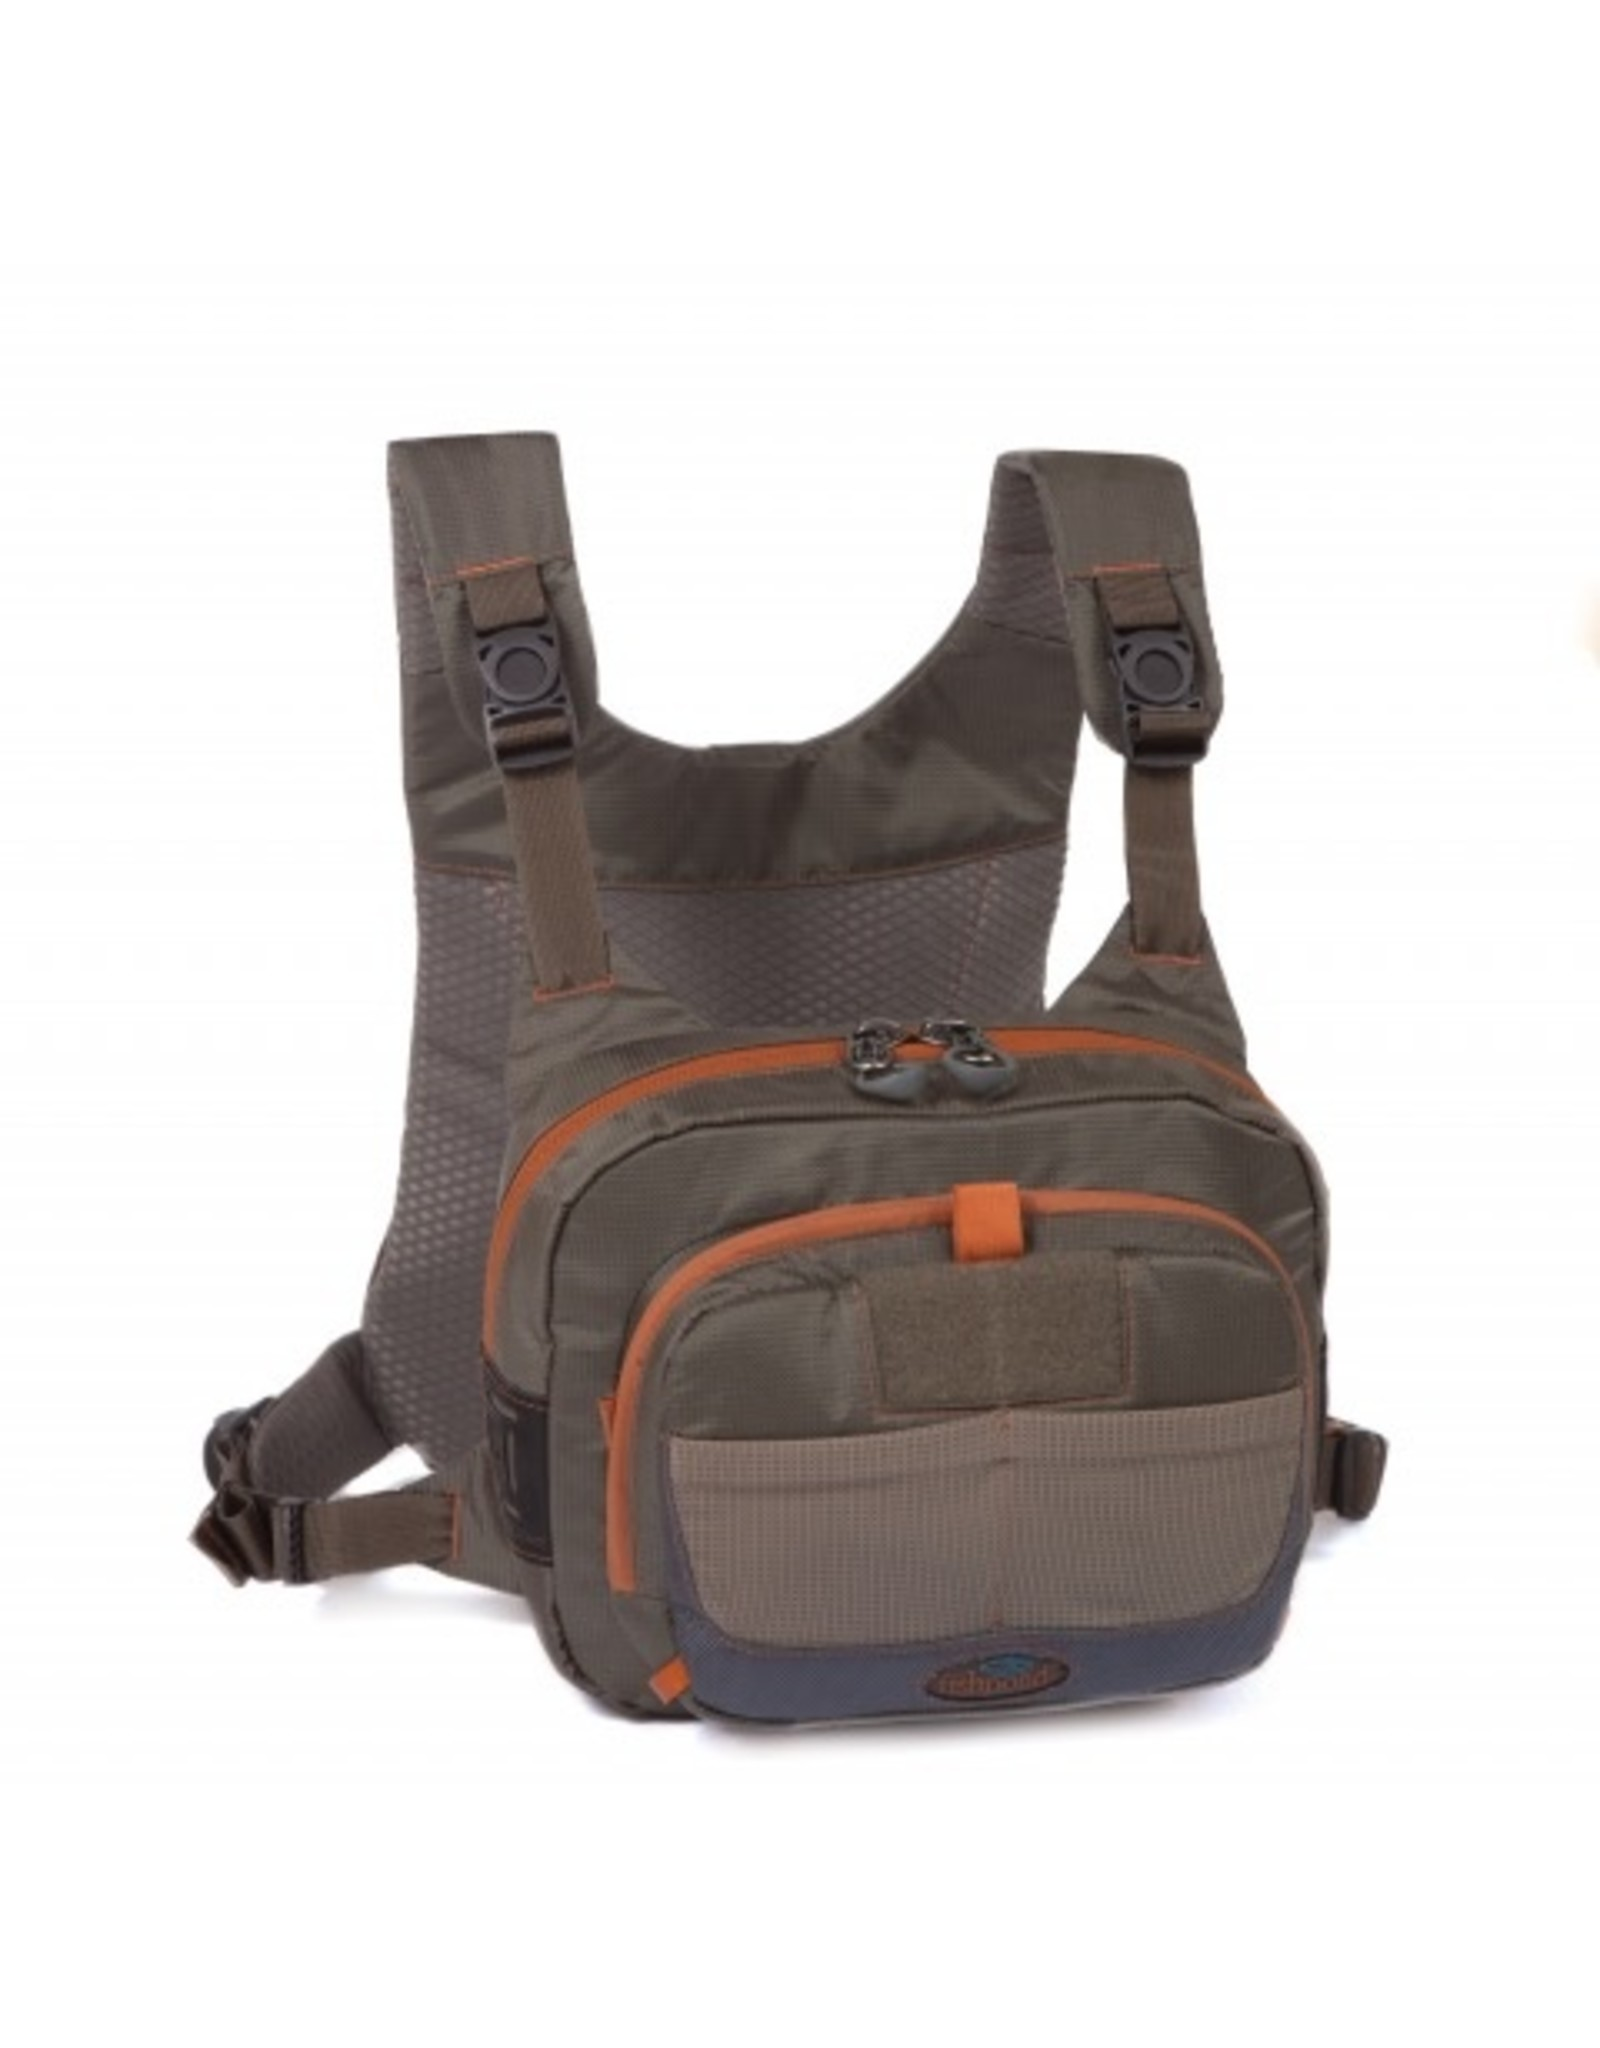 THE CROSS-CURRENT CHEST PACK IS DESIGNED TO KEEP ALL YOUR ESSENTIALS AND BOXES ORGANIZED, KEEPING THEM HIGH ON YOUR BODY AT THE READY.